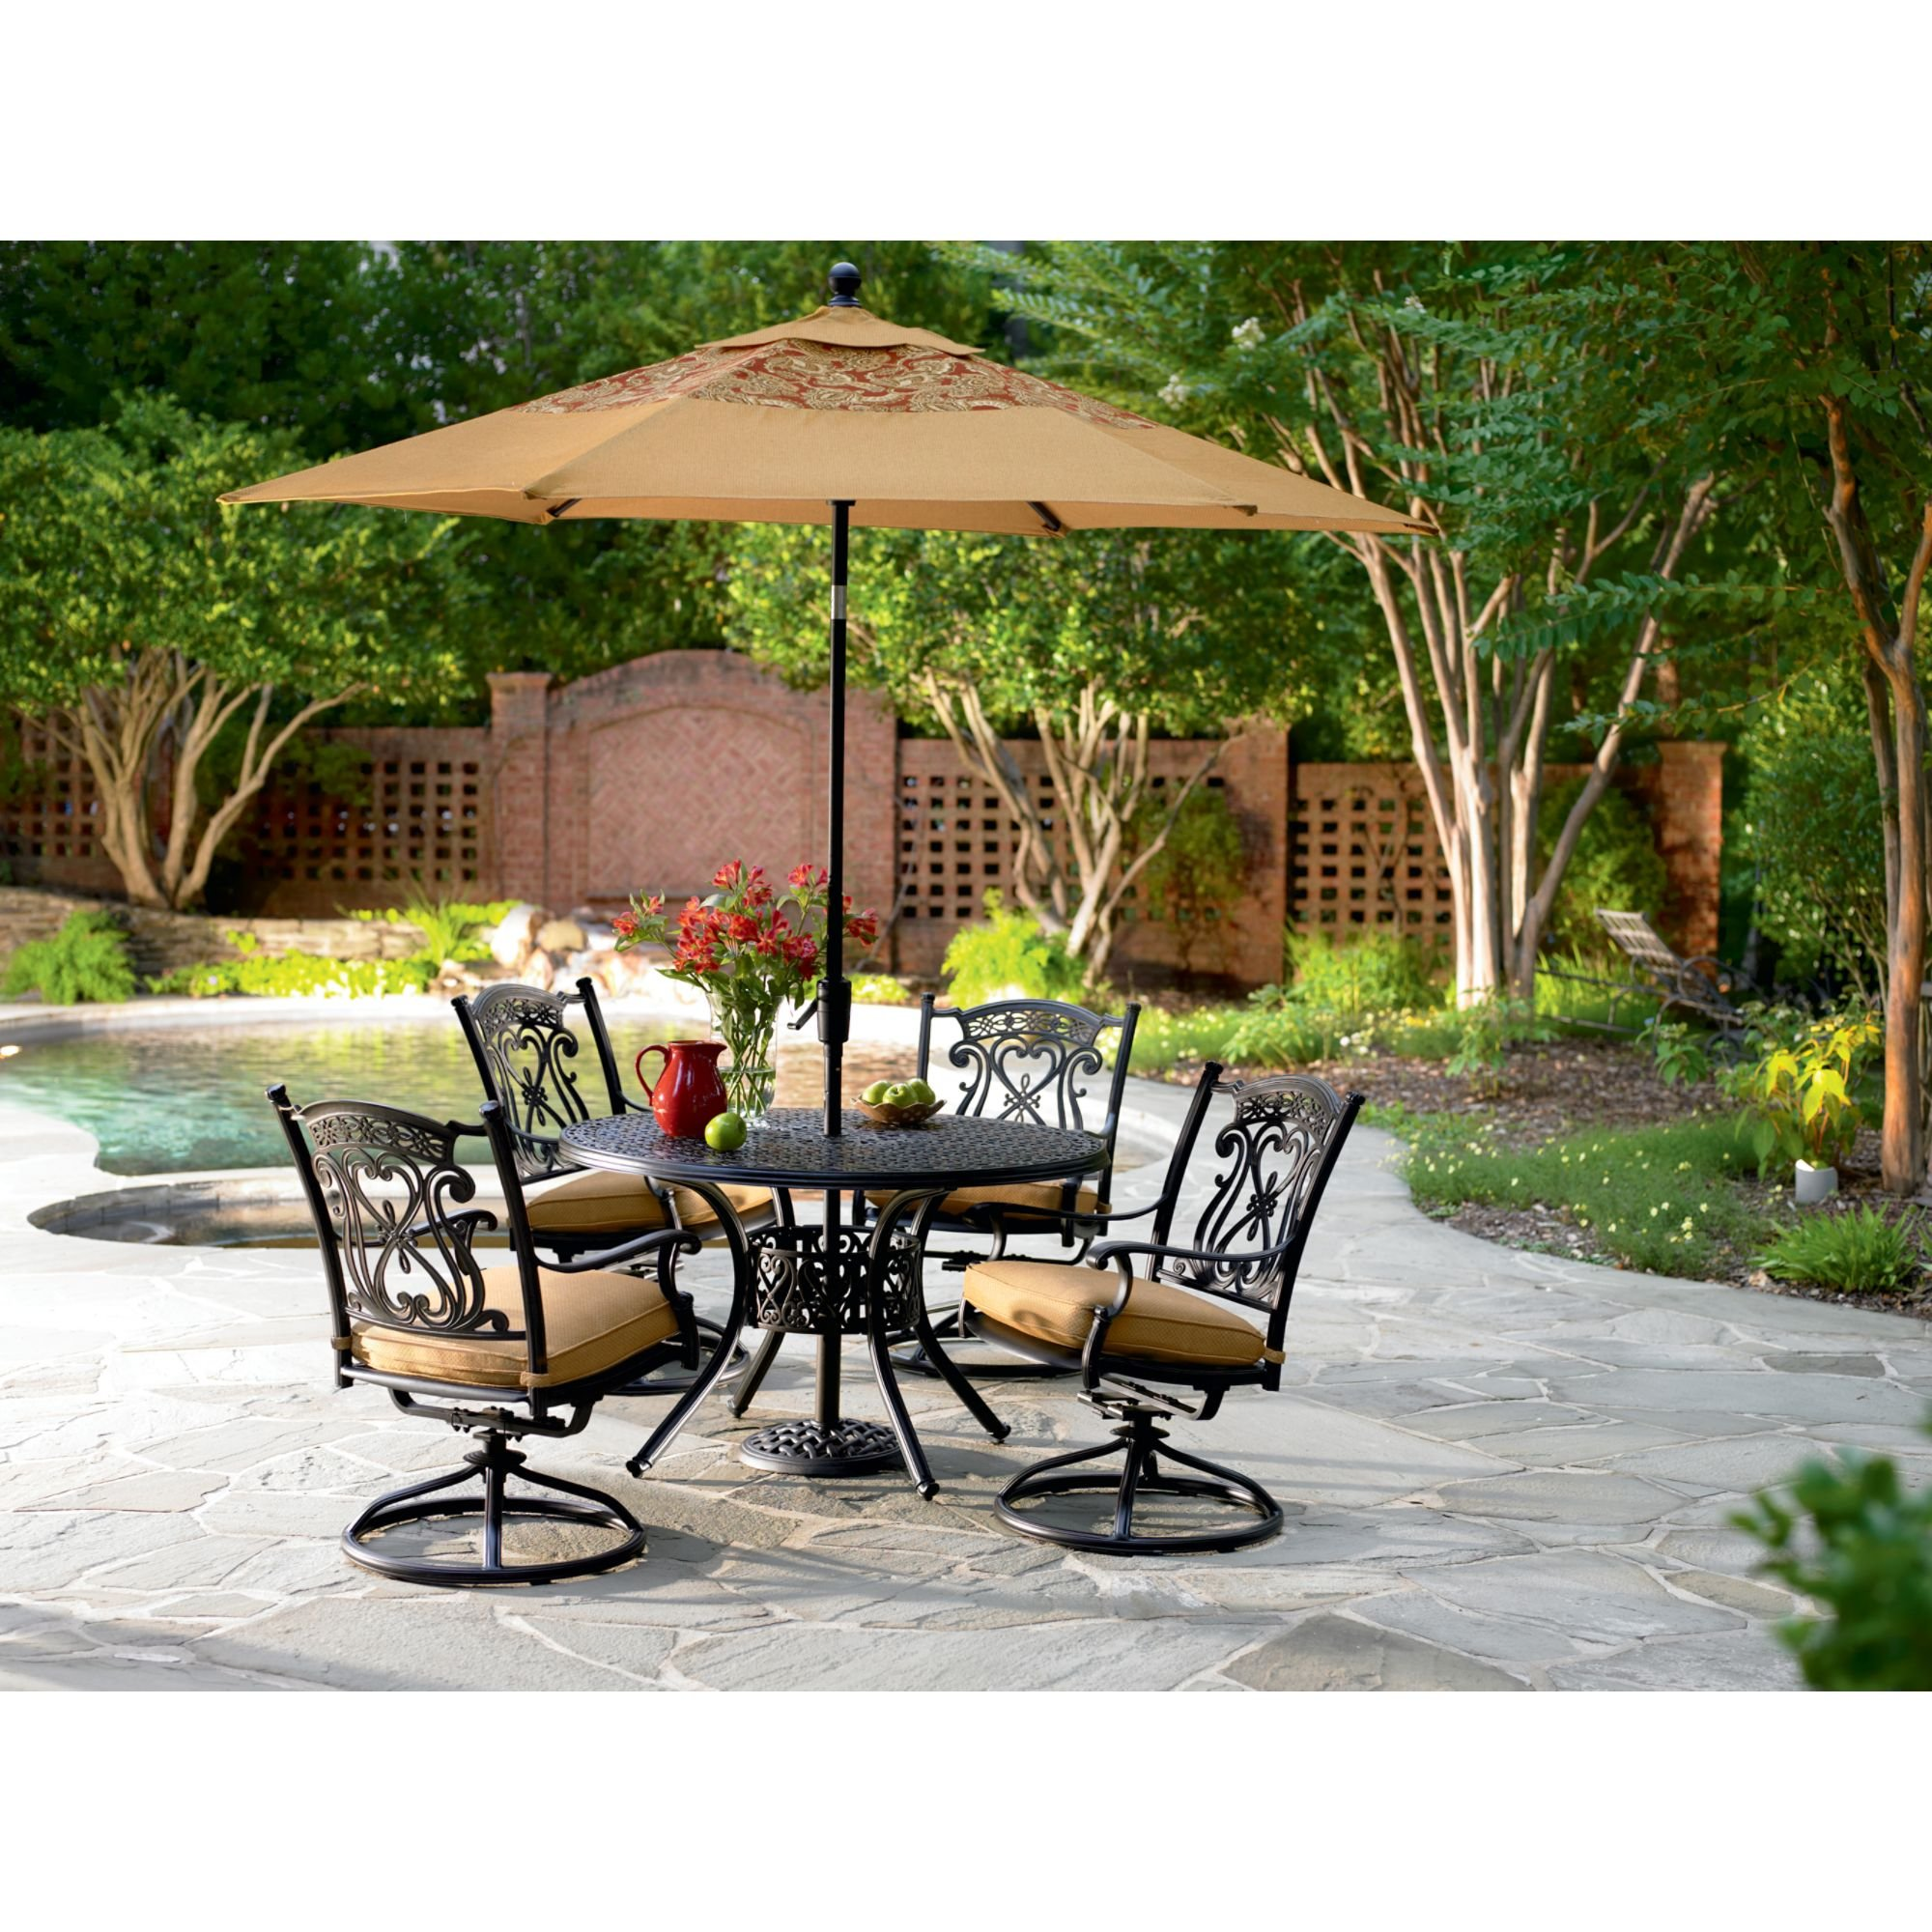 Sears Patio Furniture | Sears Automotive Coupons | Sears Retailmenot Part 54